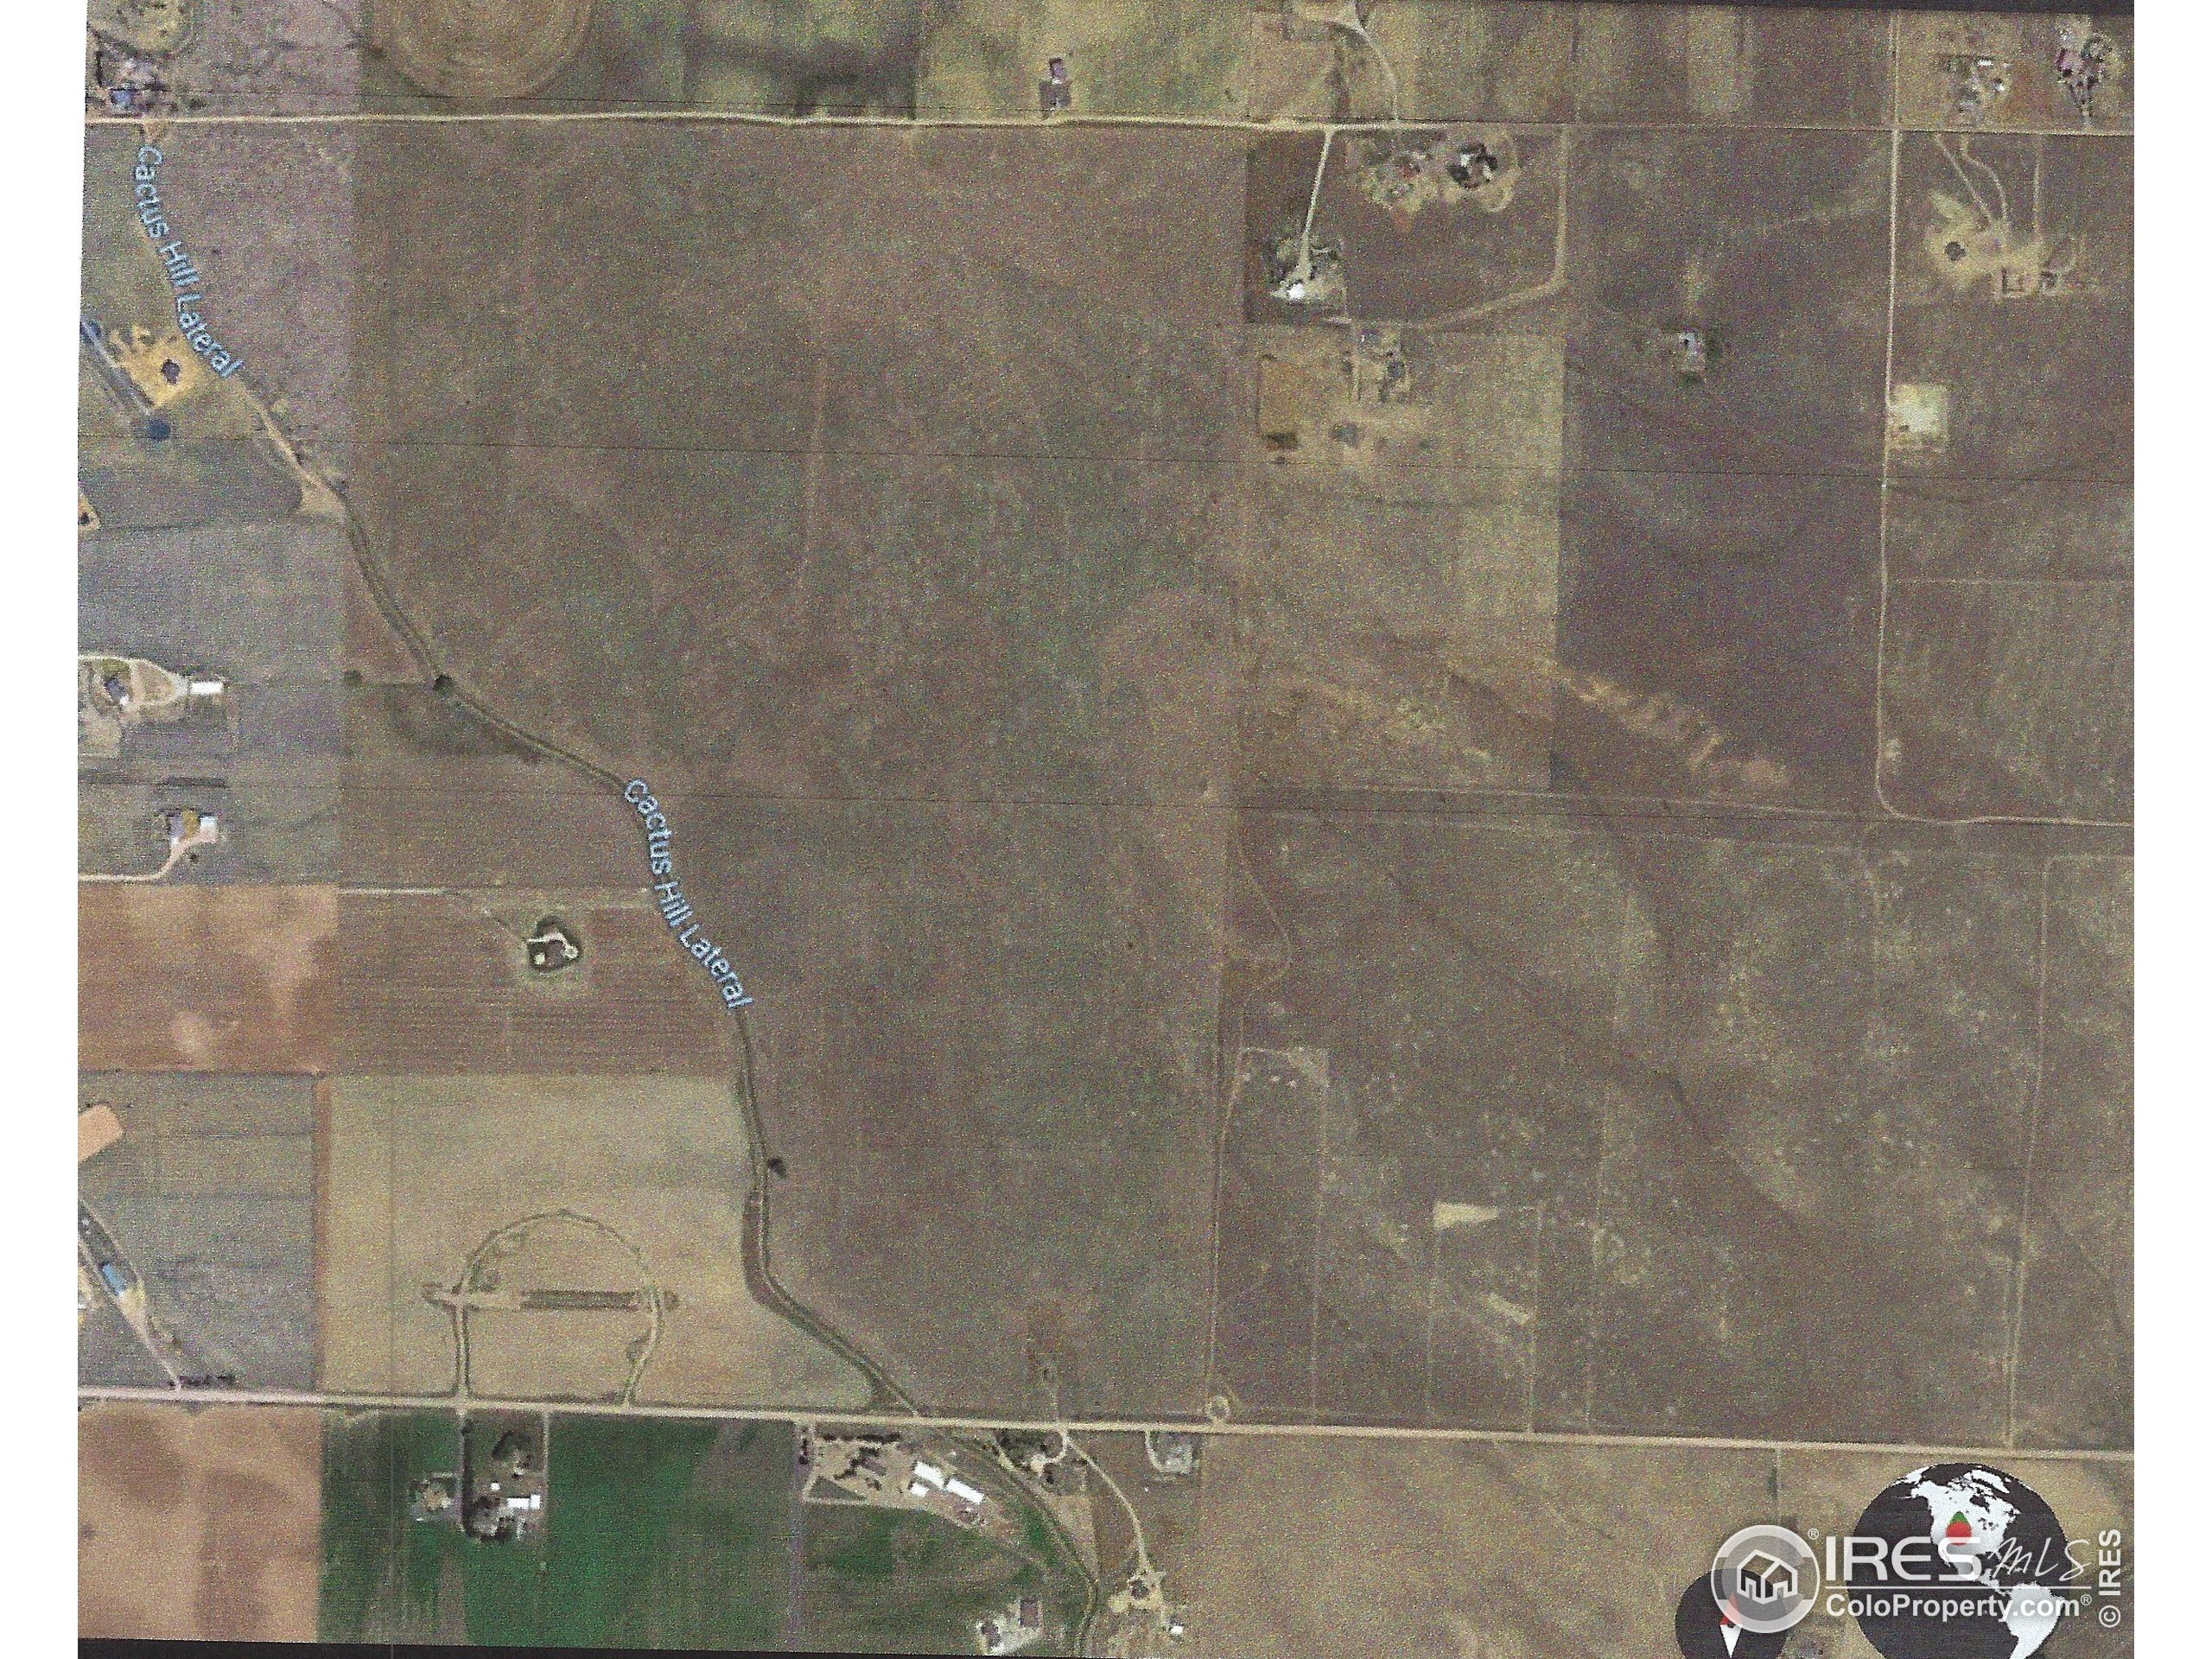 GOOGLE EARTH PROPERTY VIEW